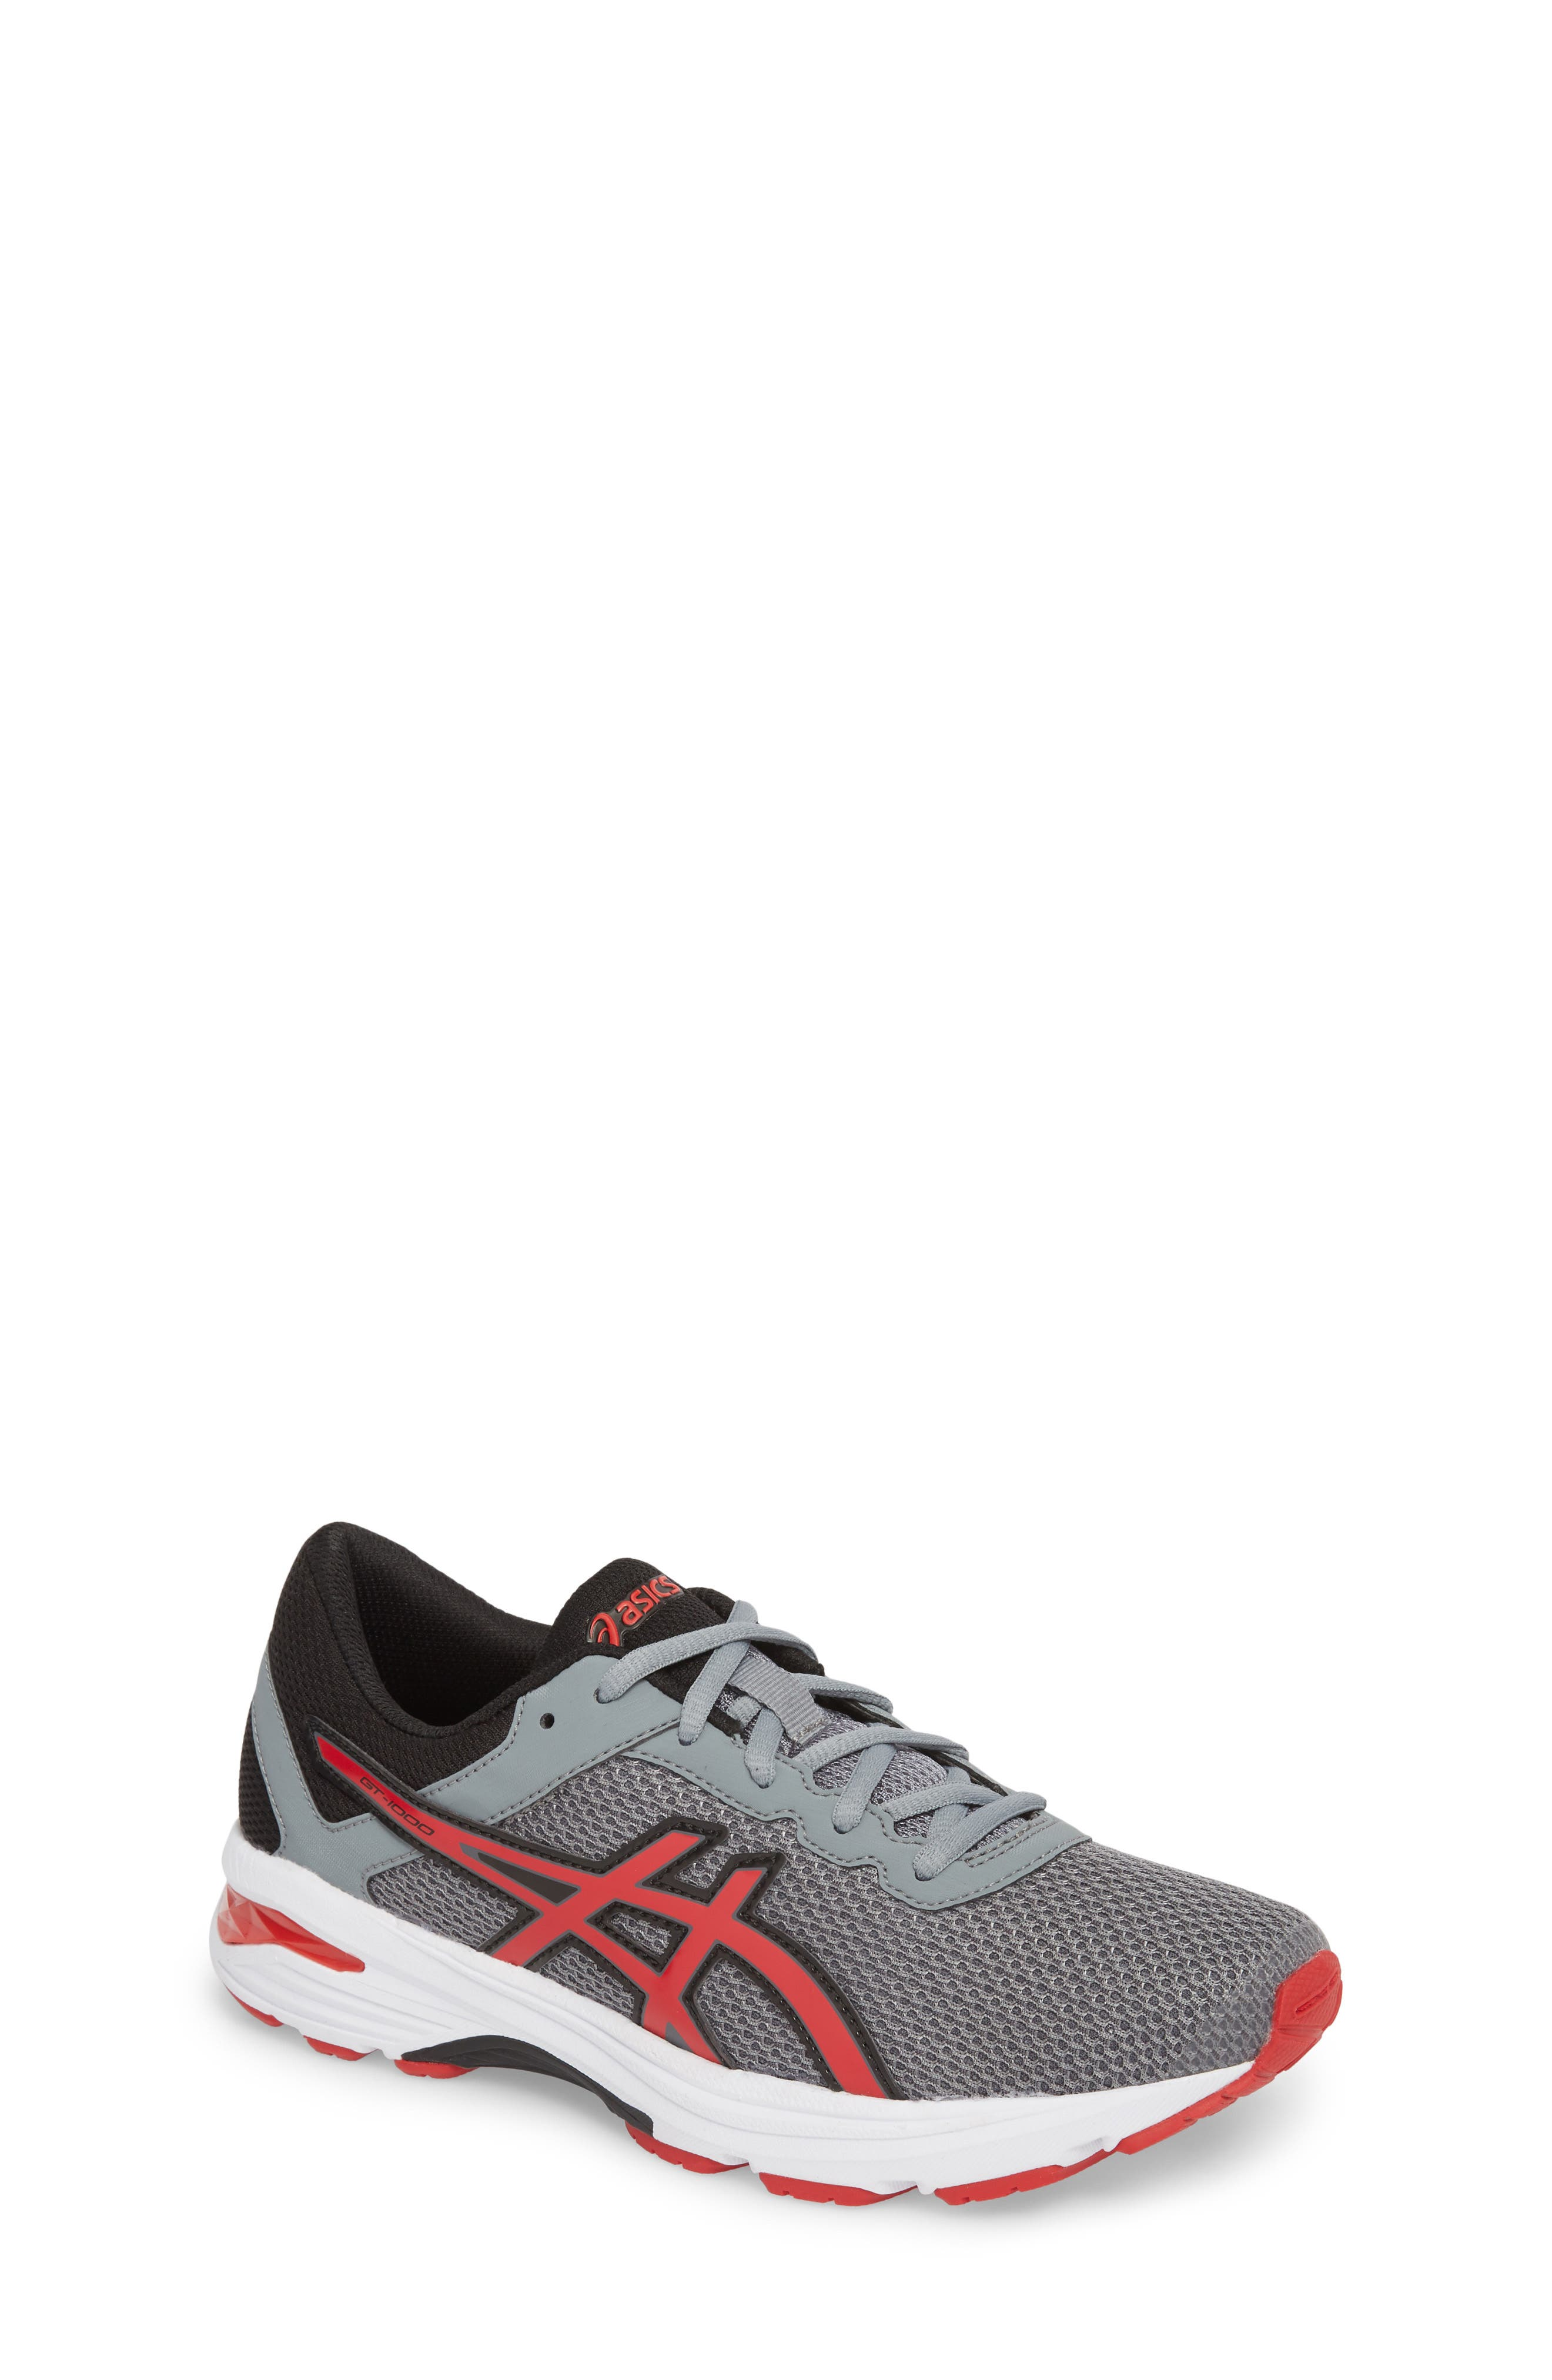 Asics GT-1000<sup>™</sup> 6 GS Sneaker,                         Main,                         color, 023